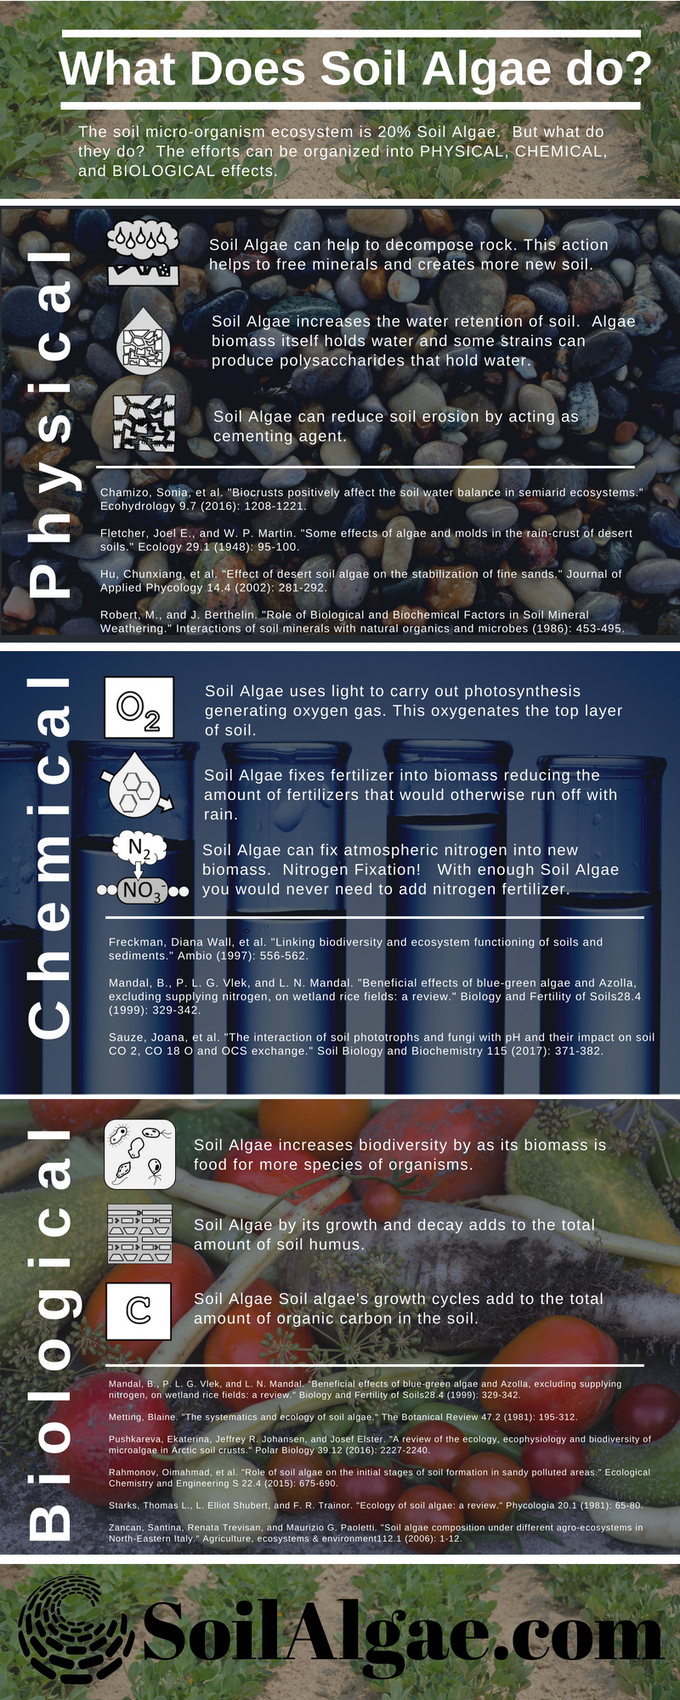 Soil Algae Infographic, why it works